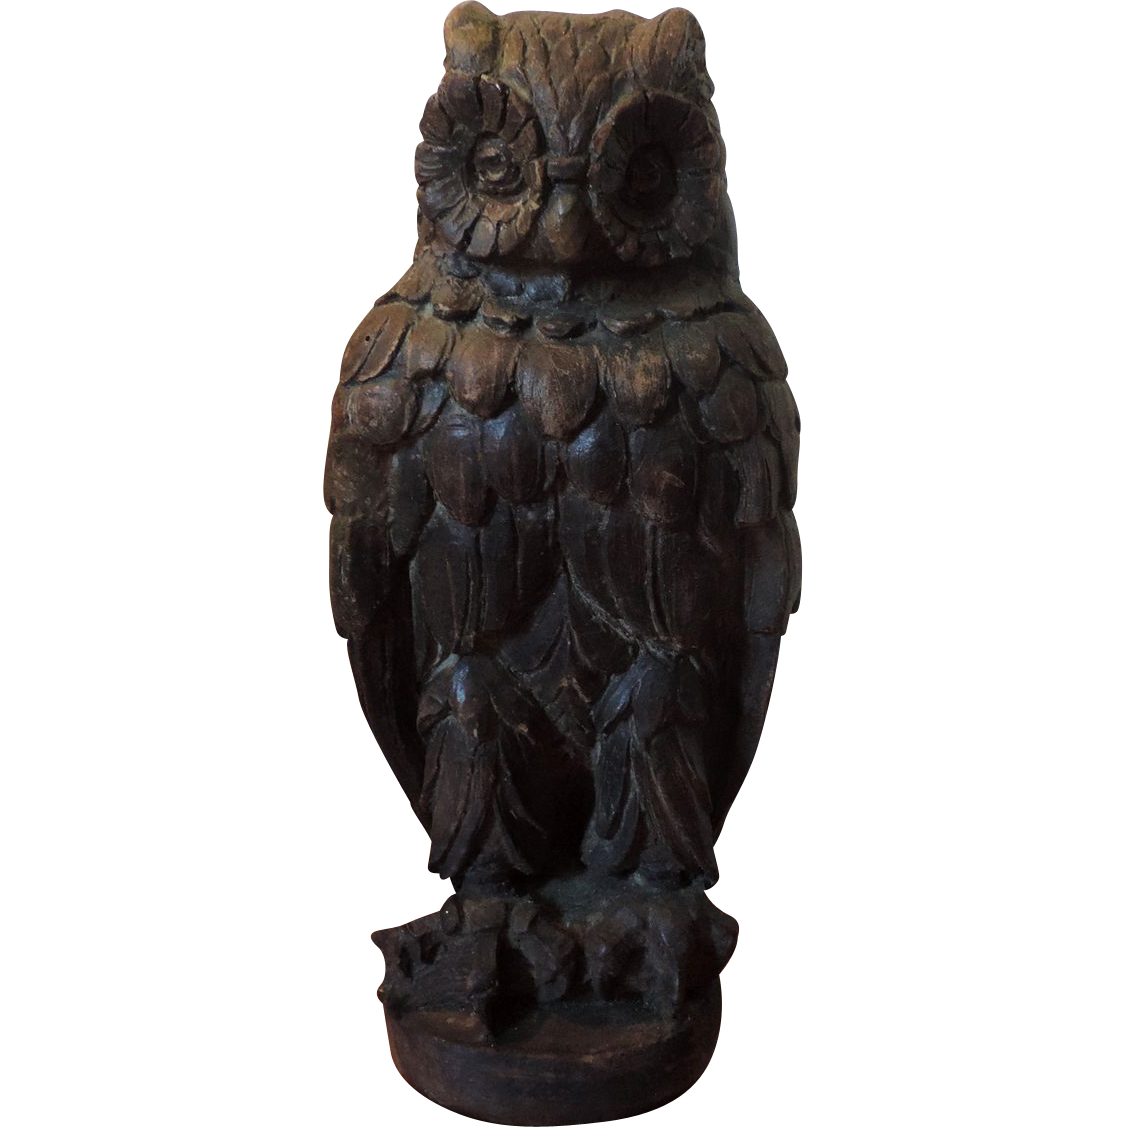 Owl statue png. Antique th century architectural